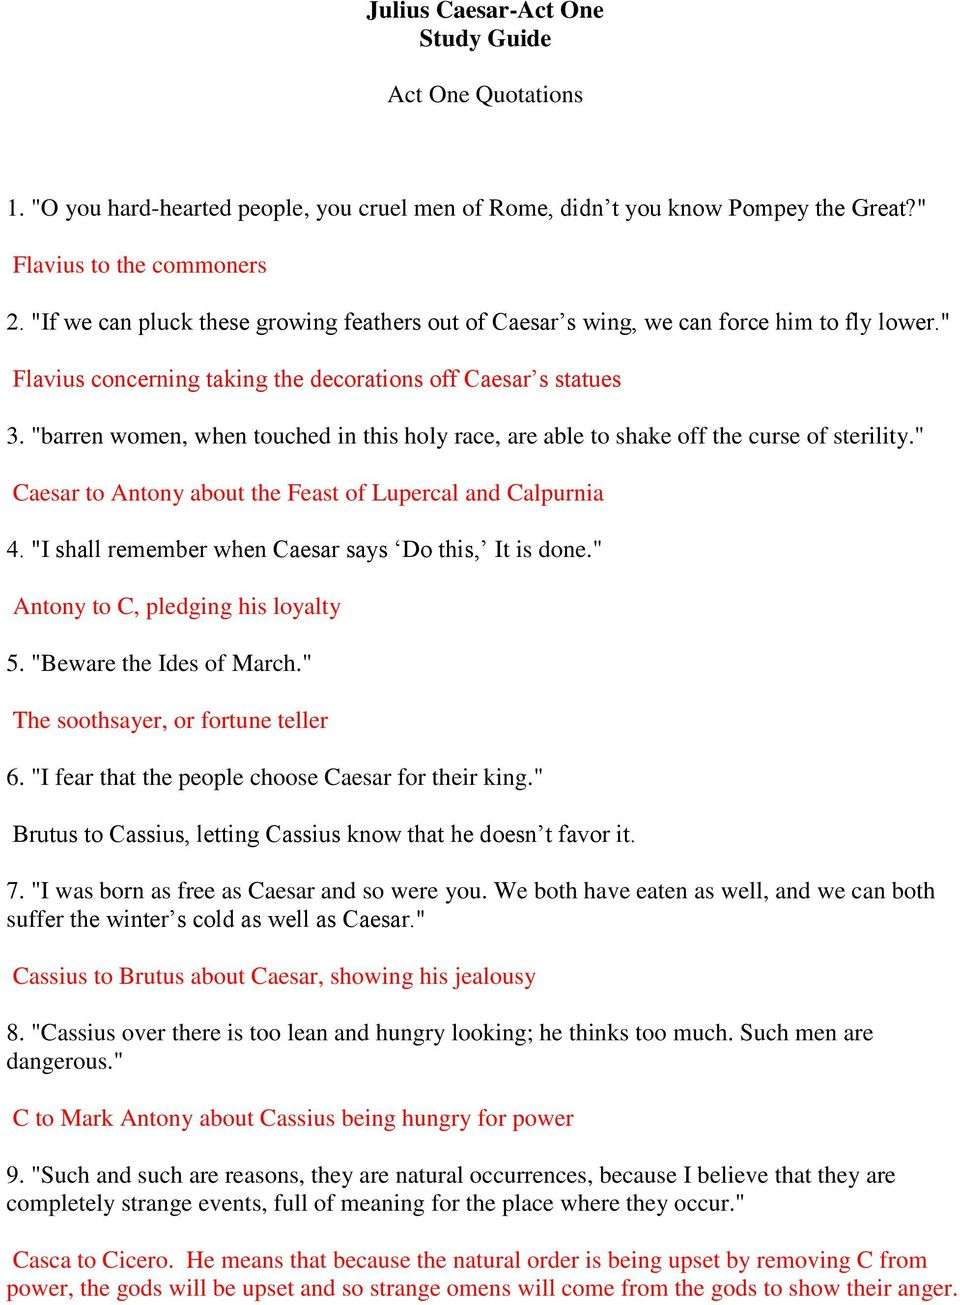 Julius Caesar-Act One Study Guide. Yelling at the people who ...